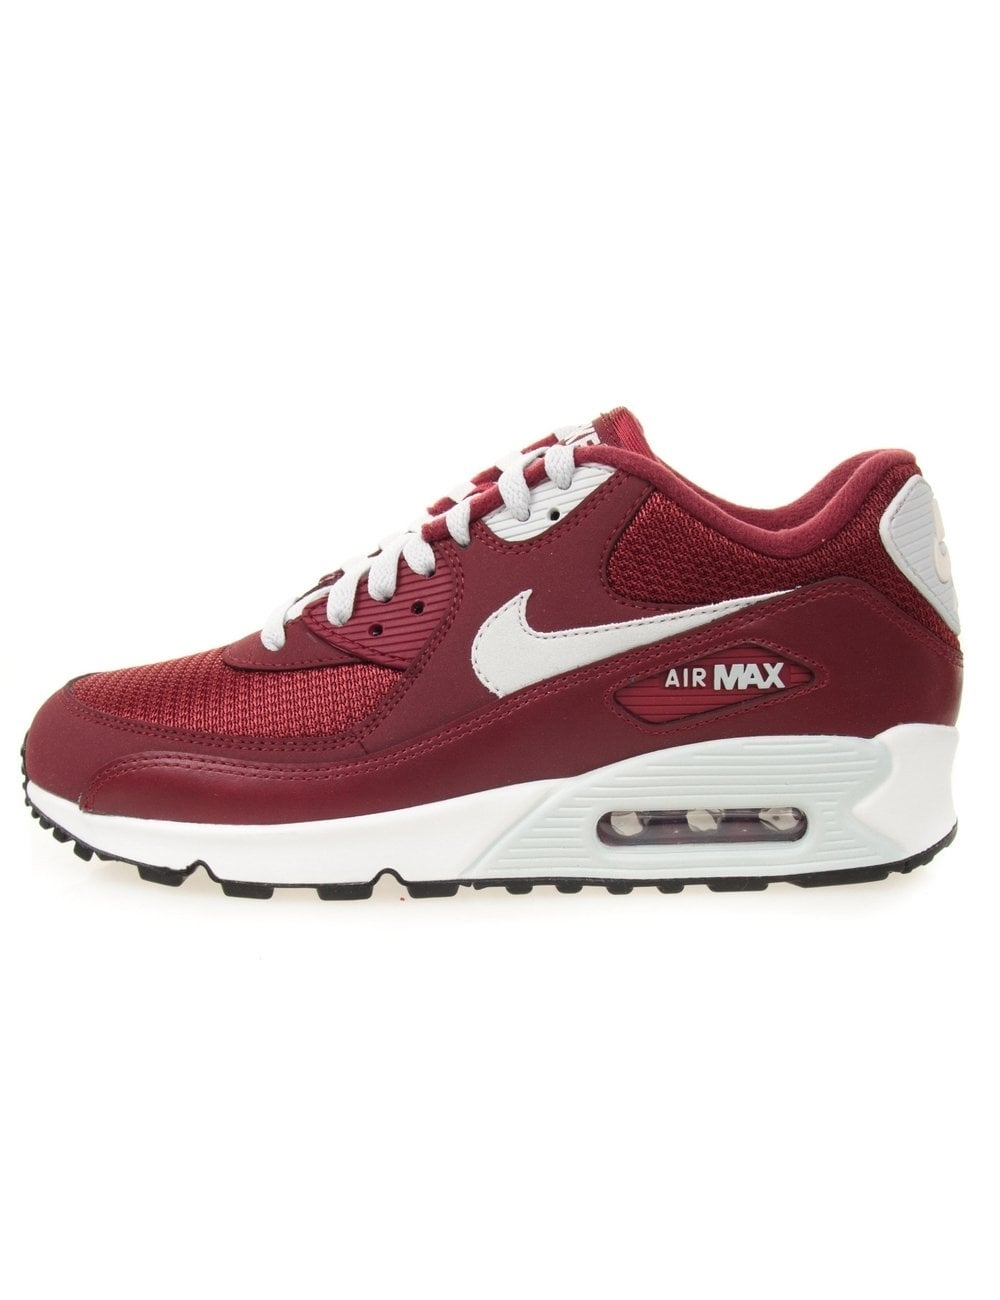 NIKE AIR MAX 90 ESSENTIAL TEAM RED